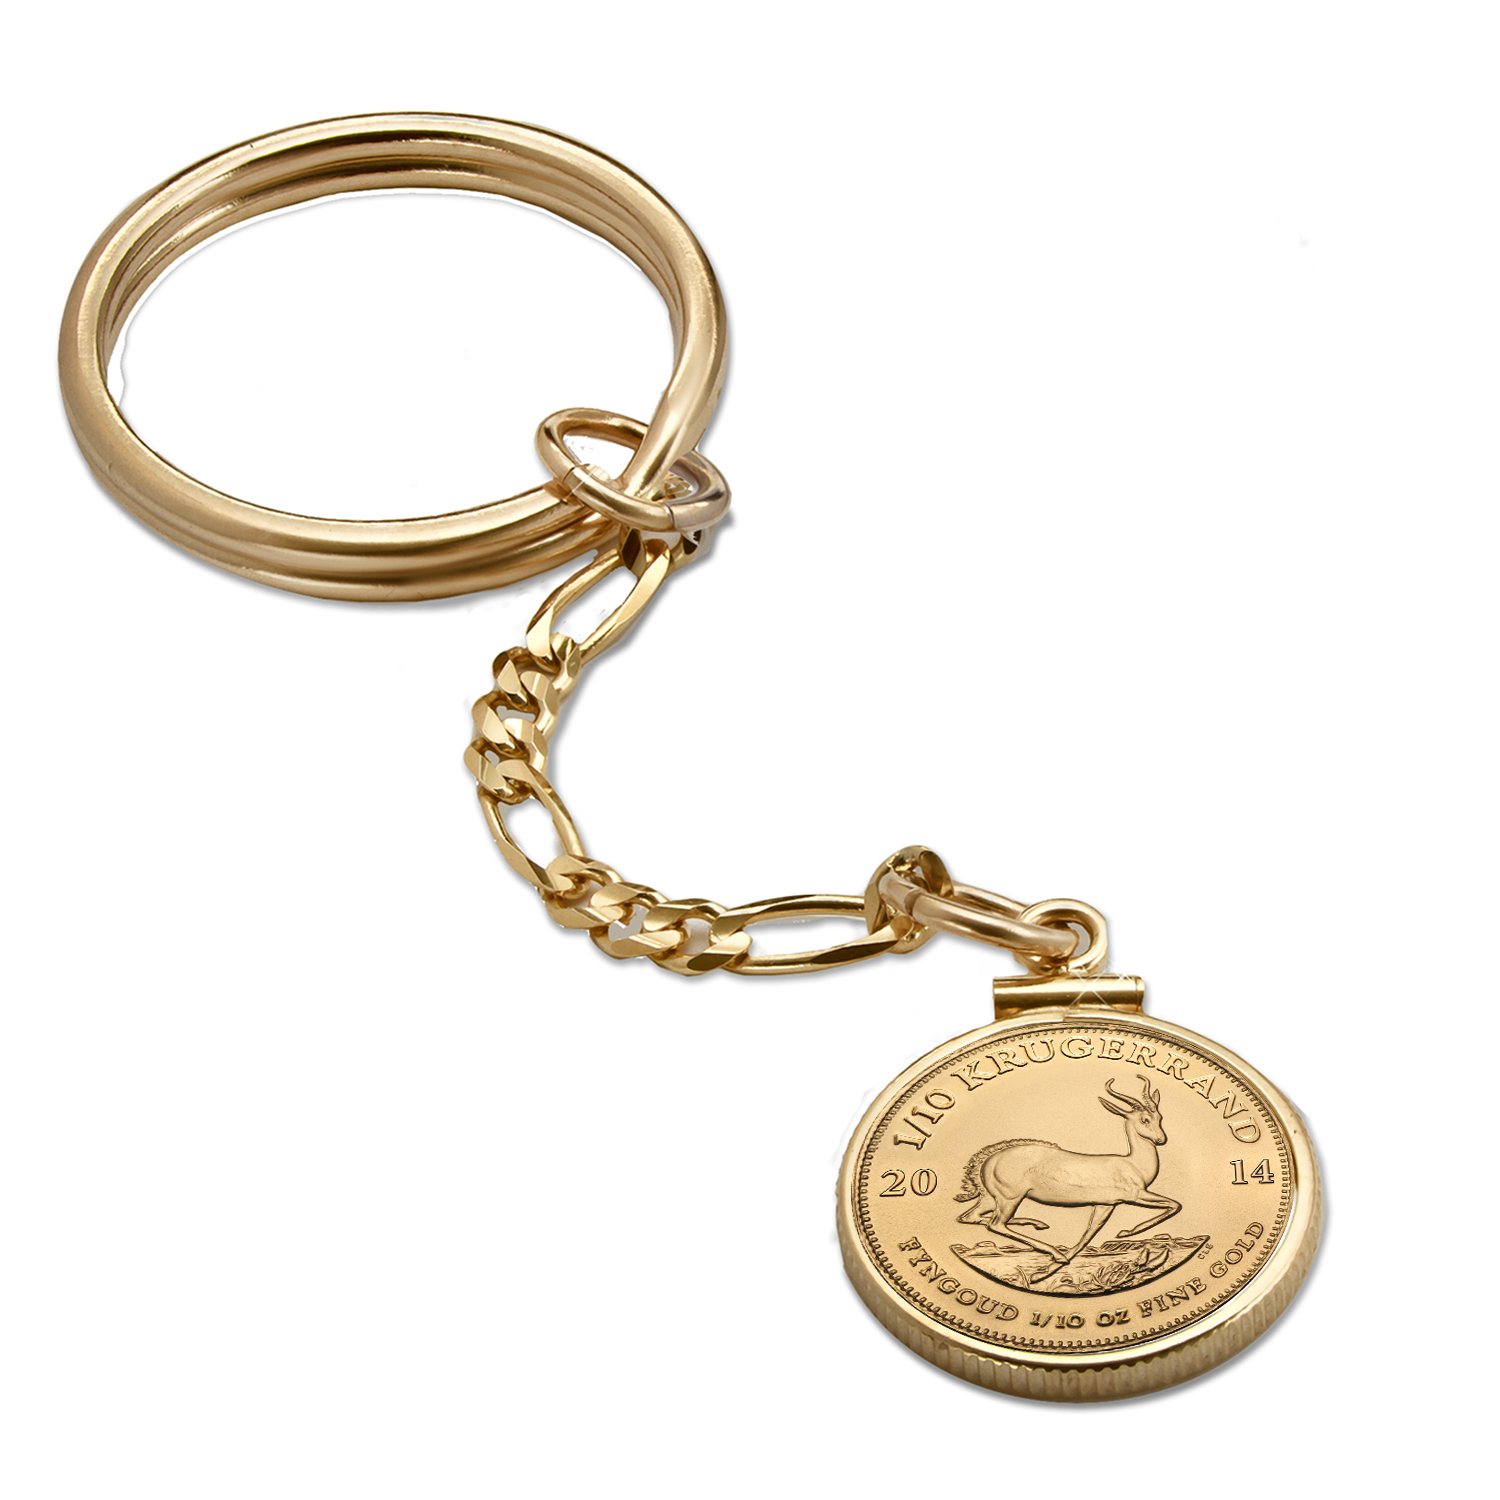 2014 1/10 oz Krugerrand Key Ring